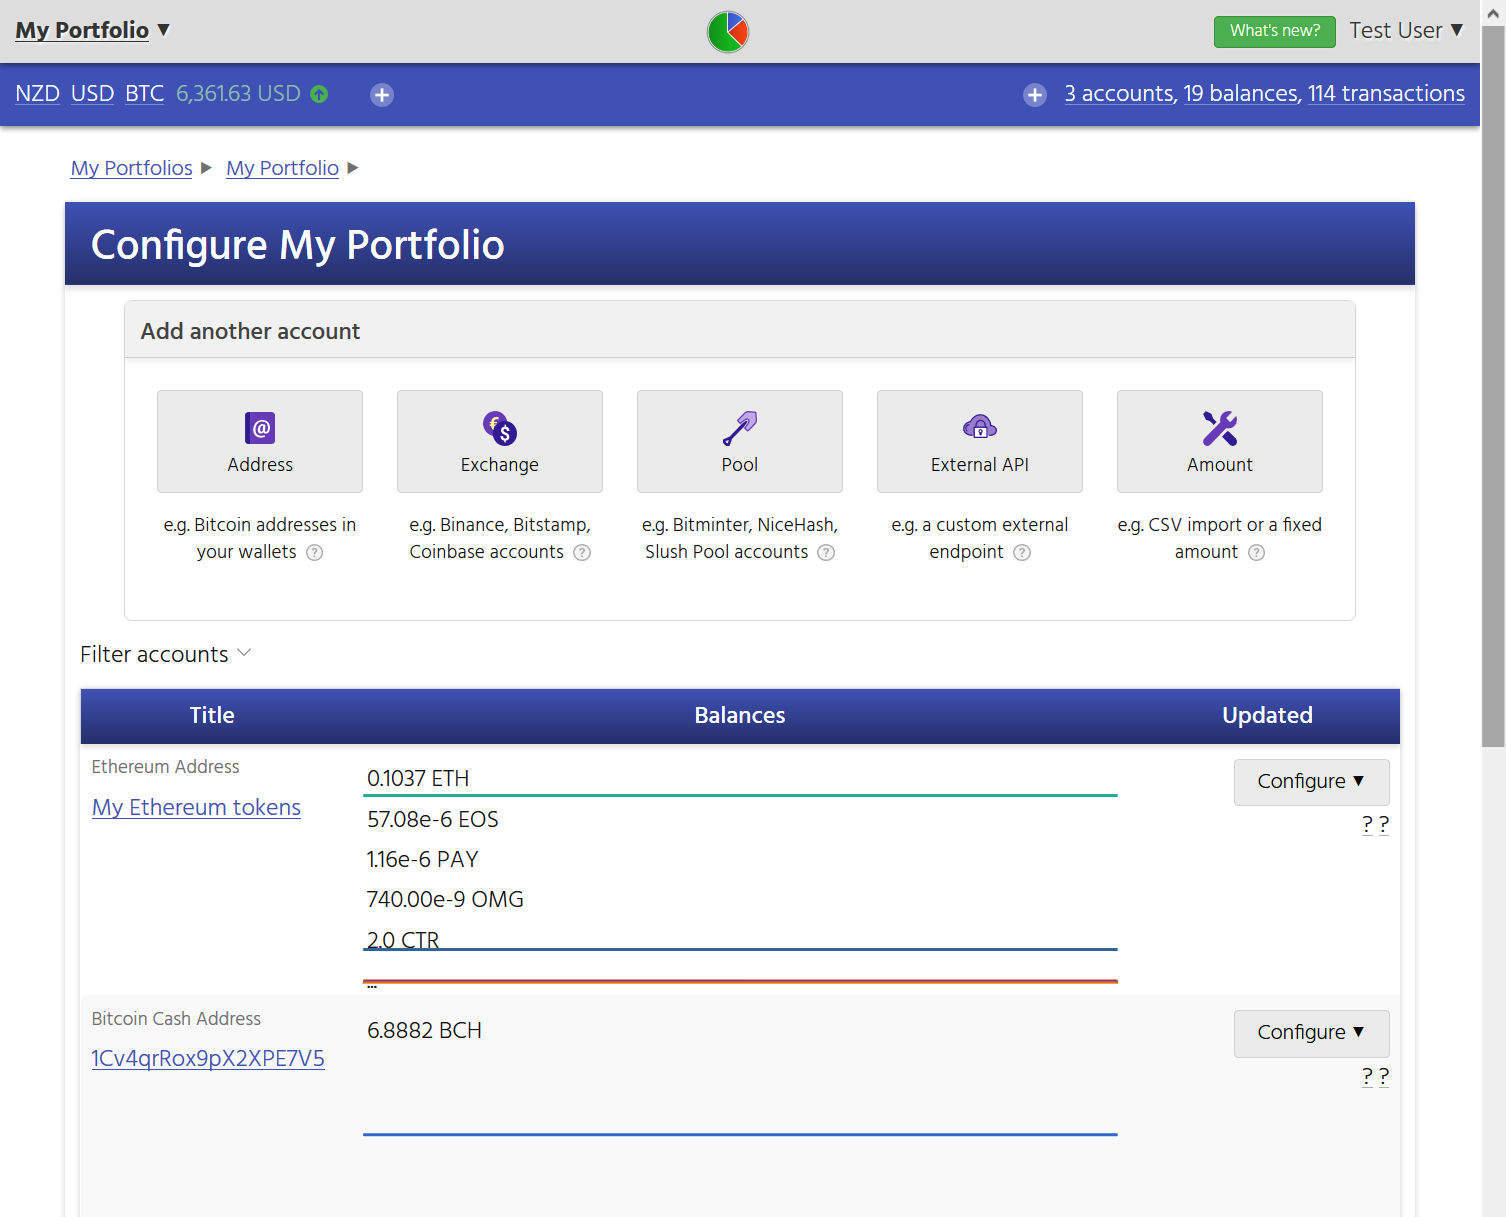 Screenshot showing the CryptFolio wizard interface to add new accounts, such as new exchange wallets, addresses, and mining pools.